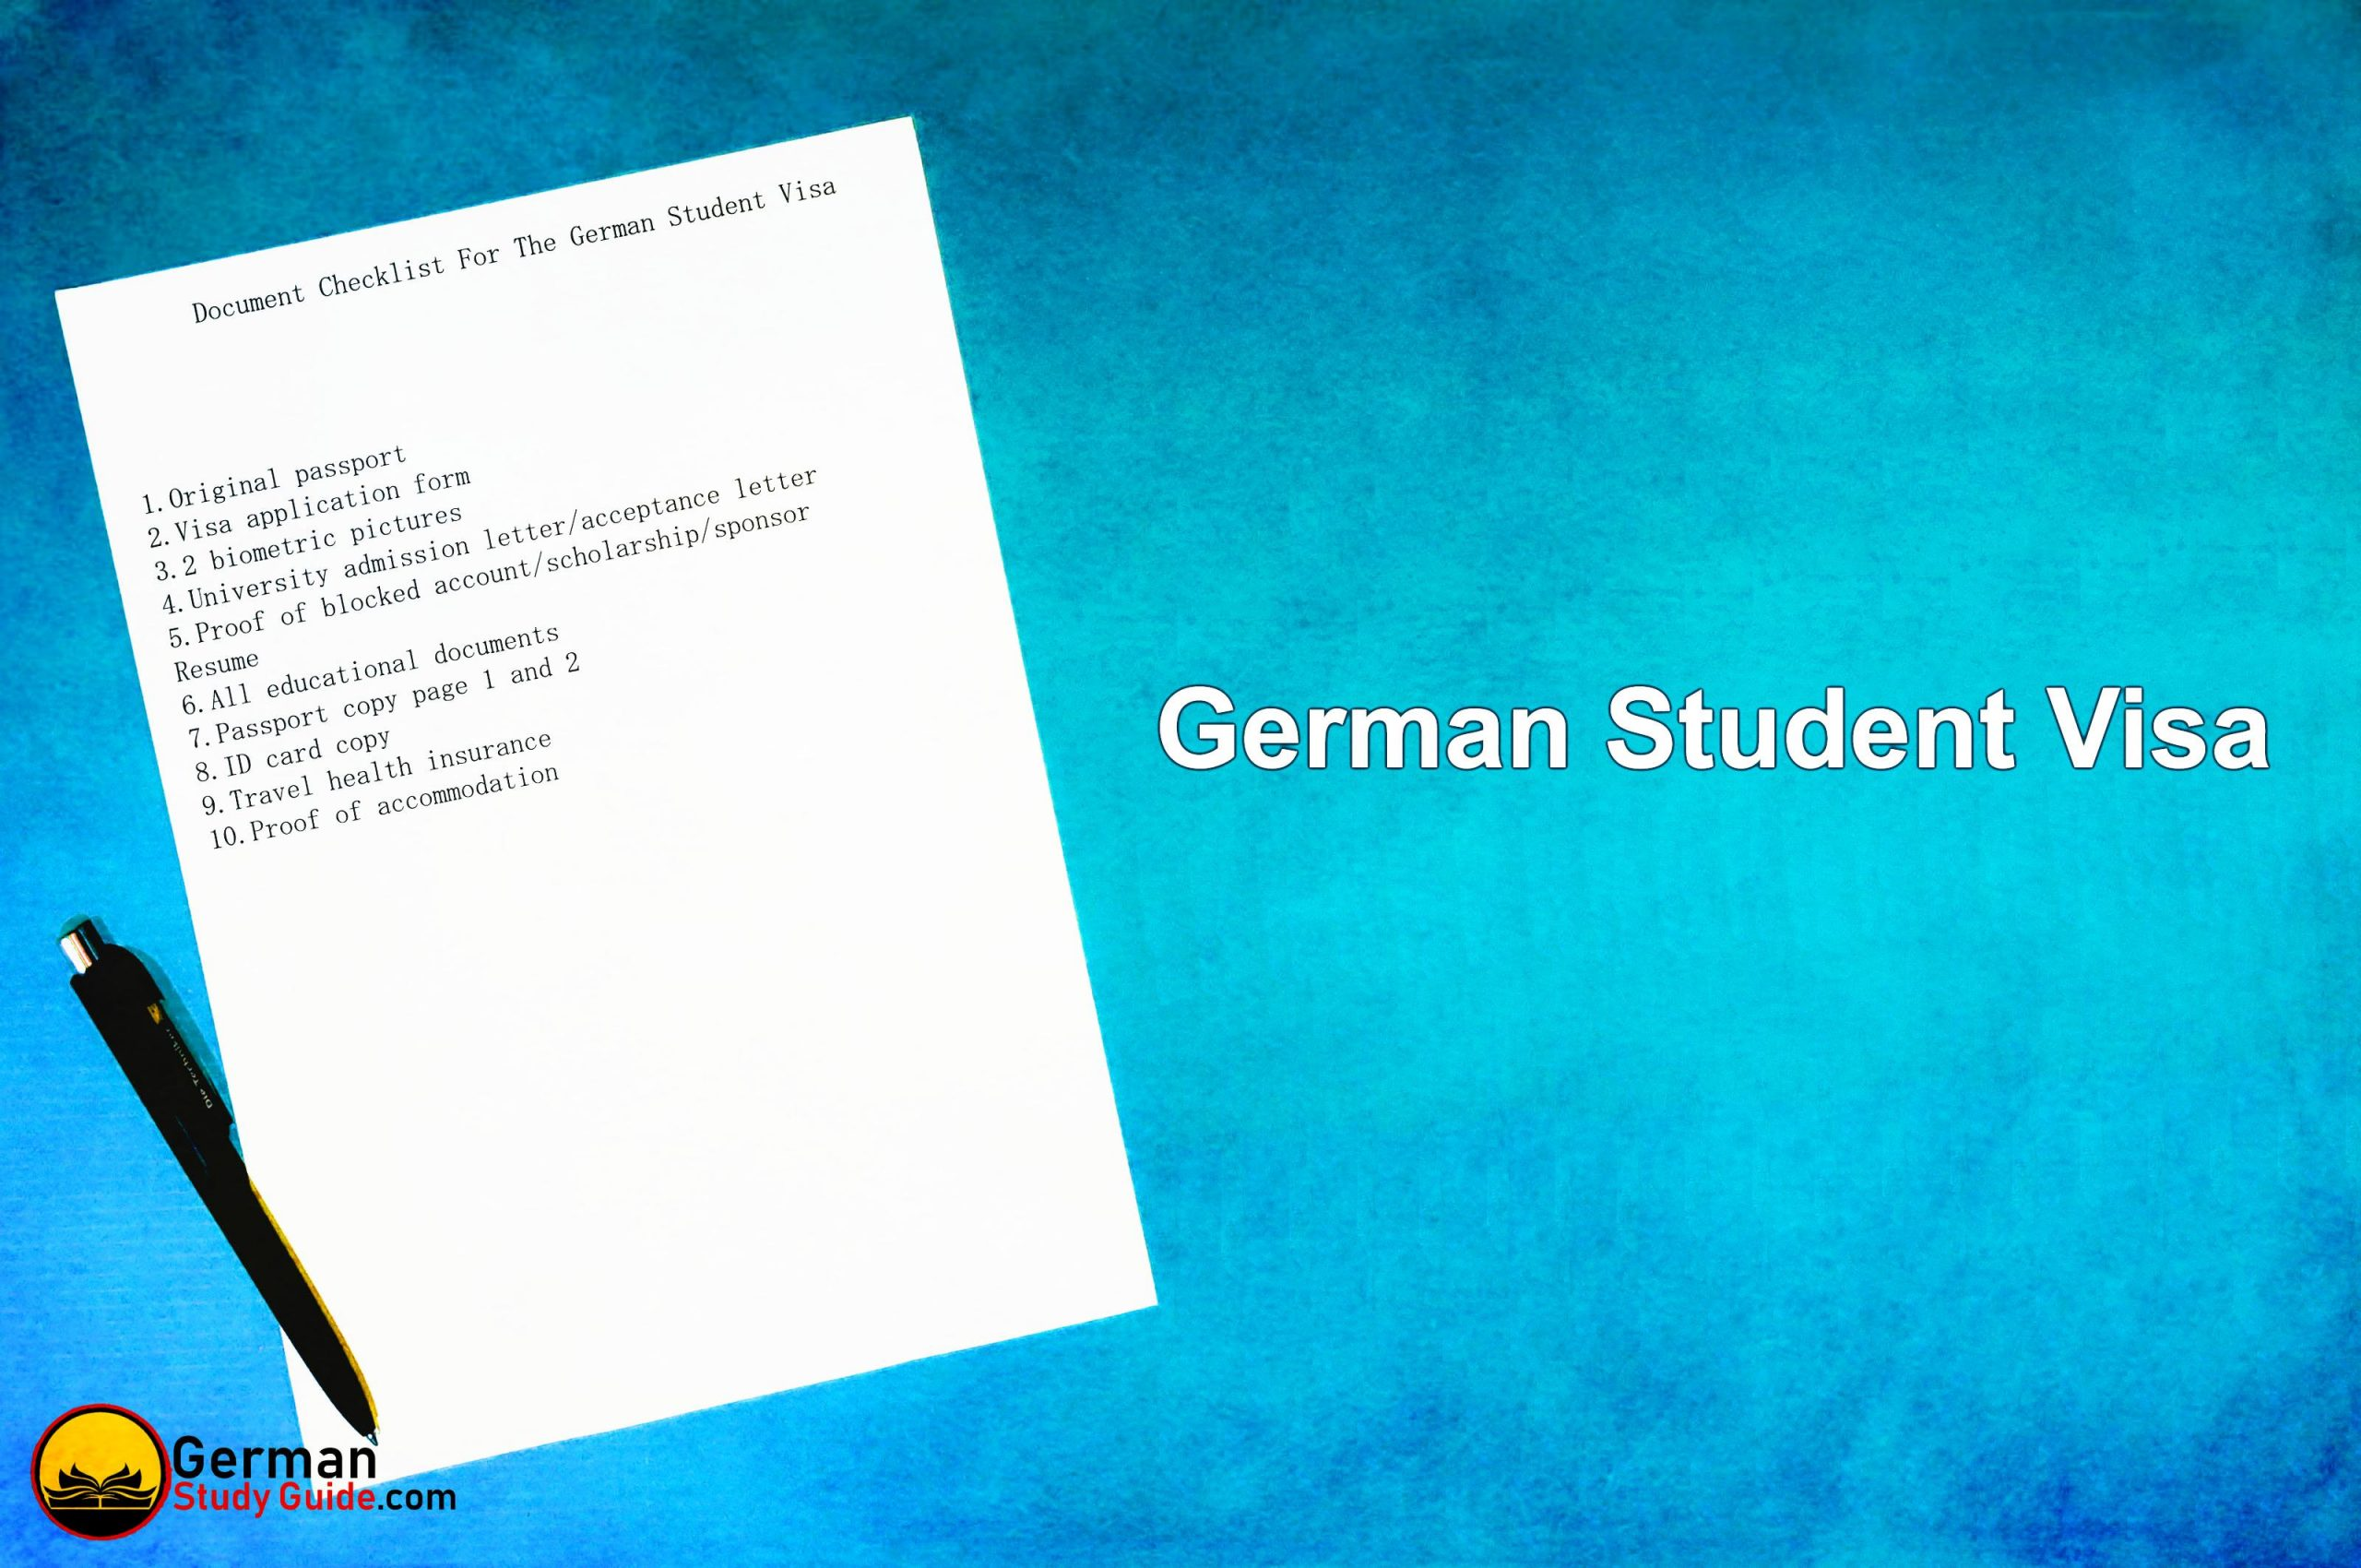 Document checklist for the German student visa